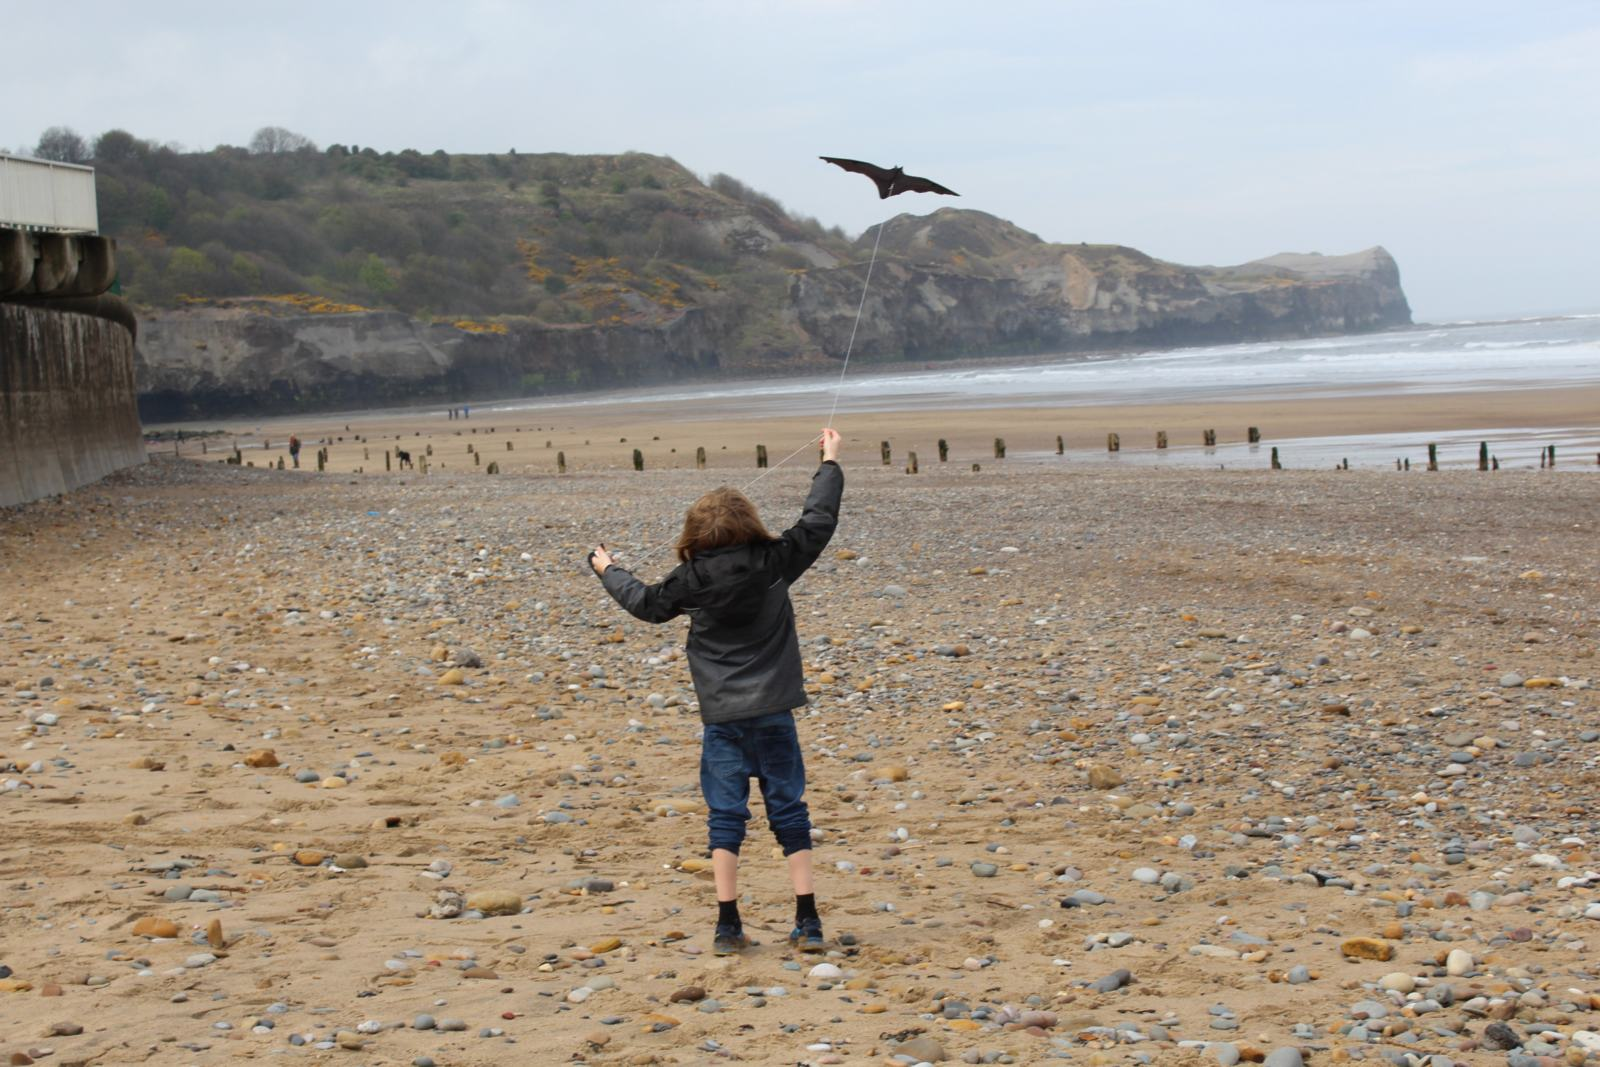 Games and Activities to do with the Kids at the Beach